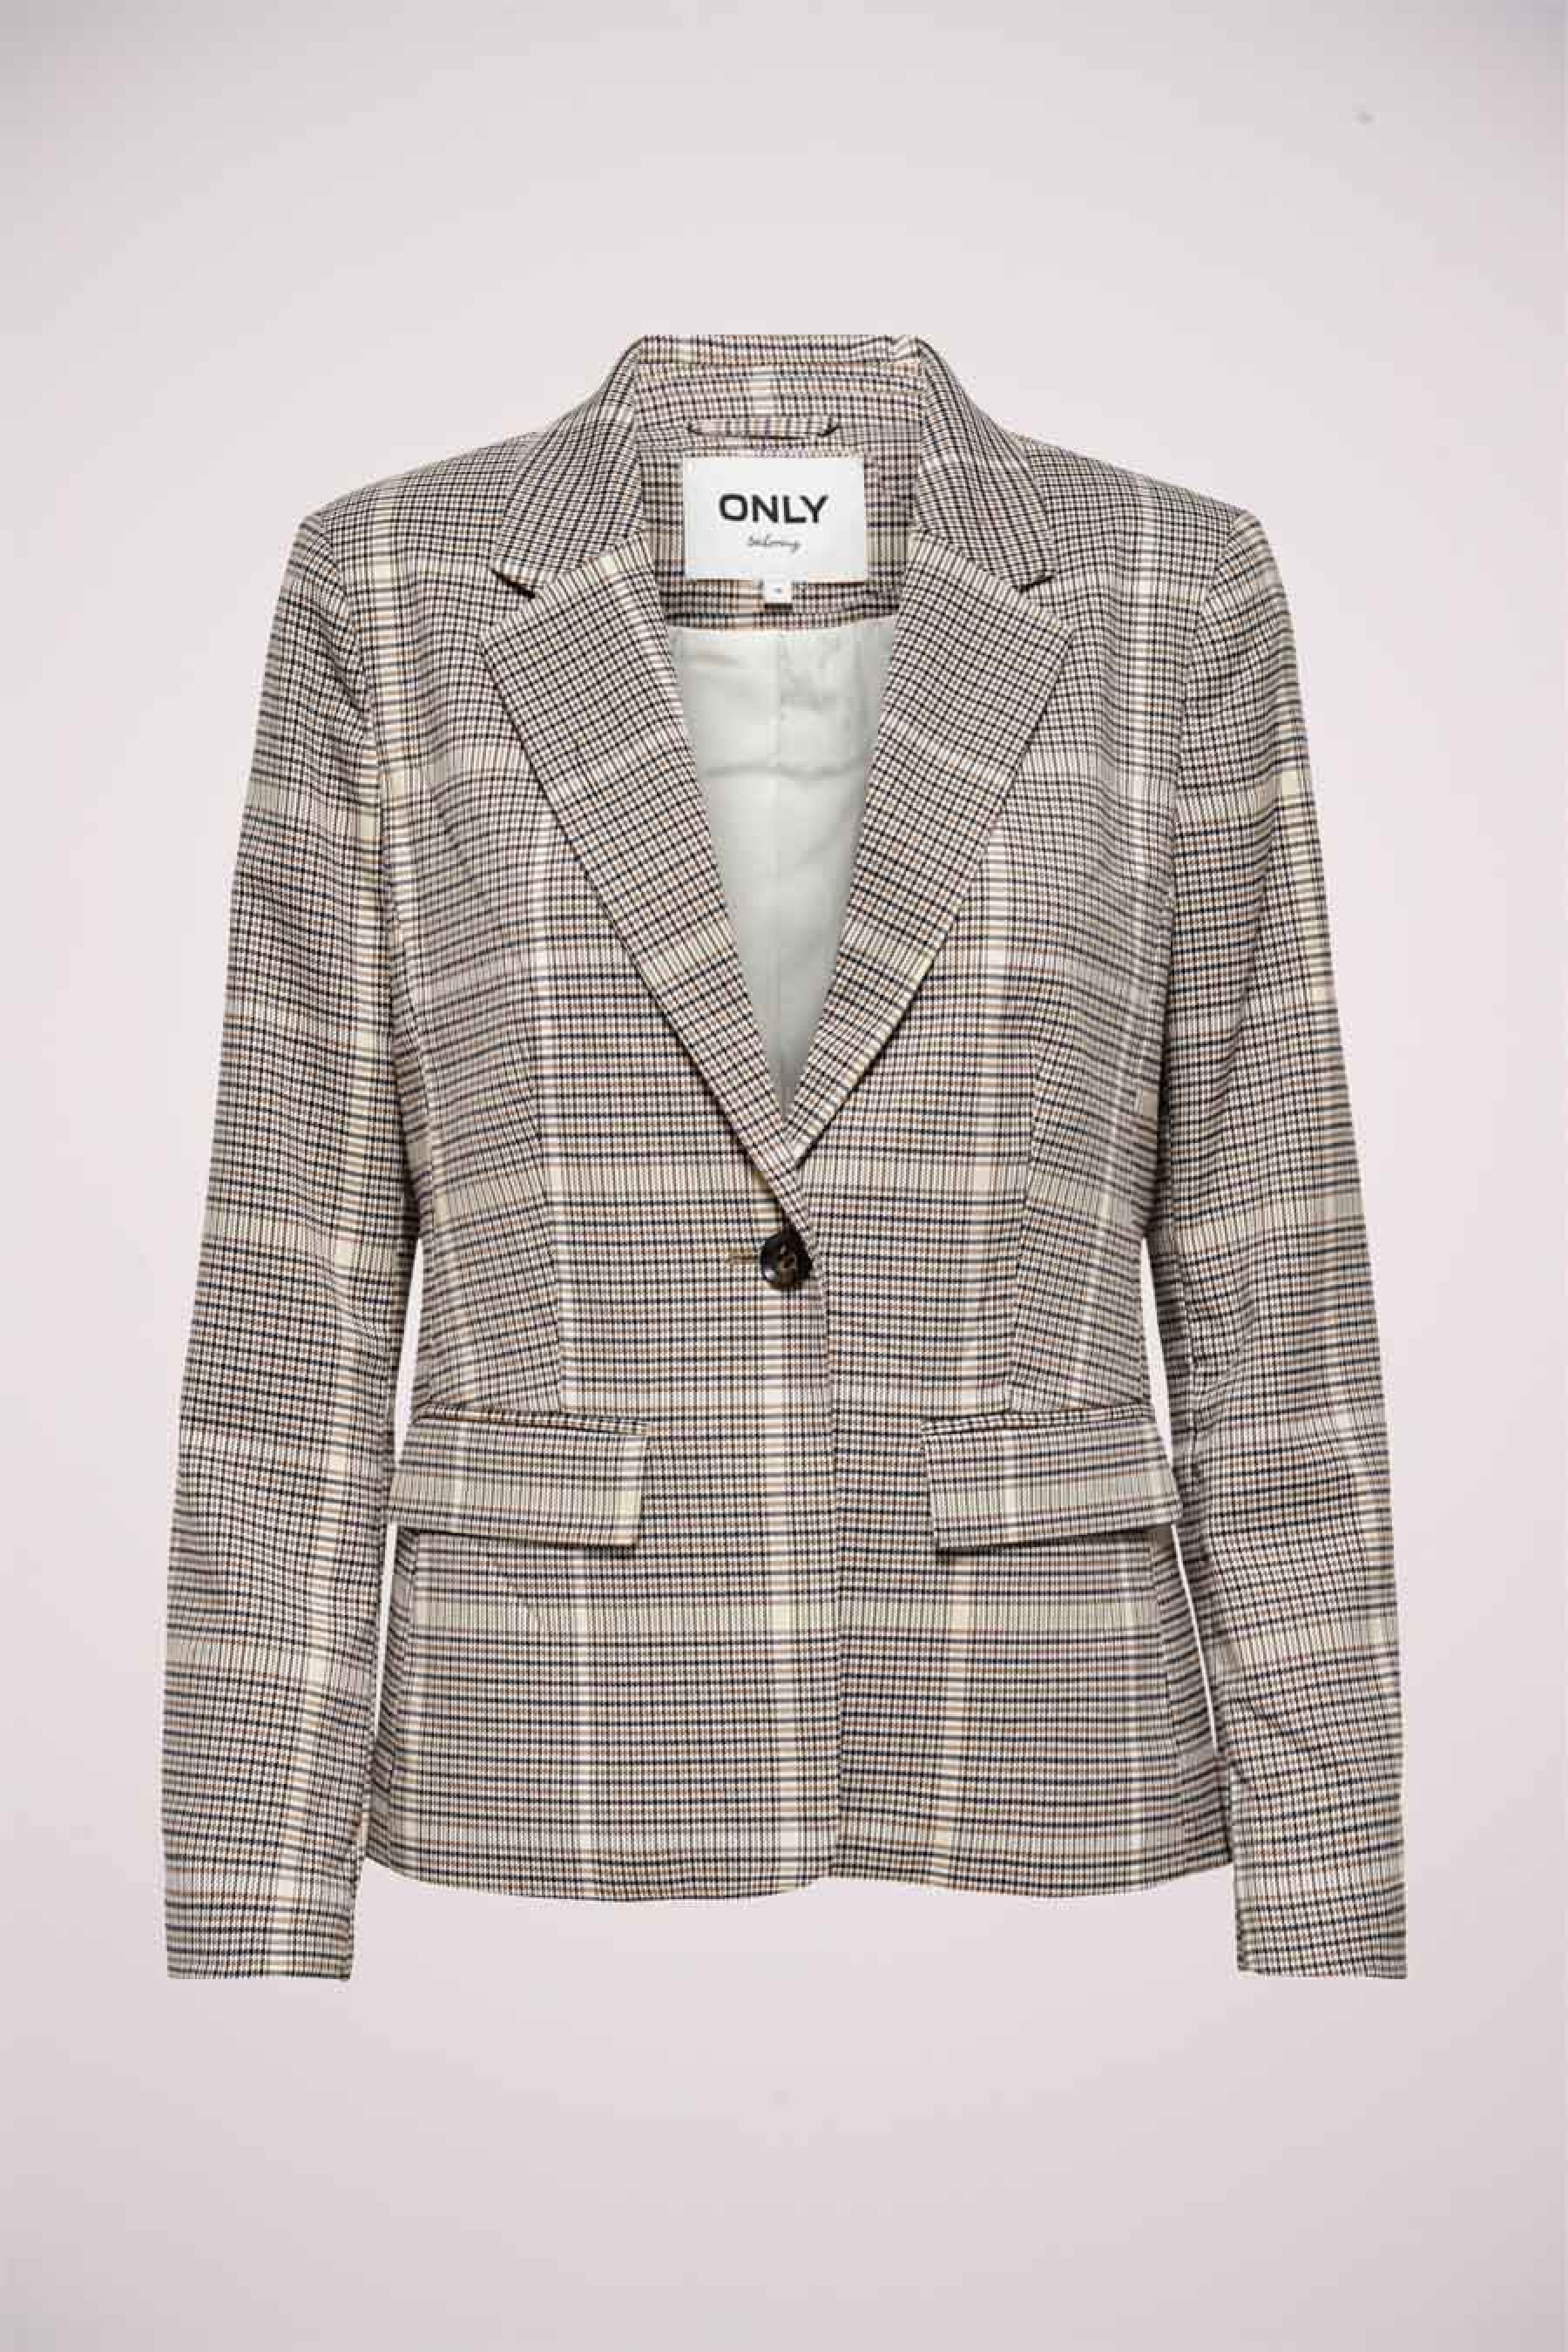 ONLY Blazer, Wit, Dames, Maat: 36/38